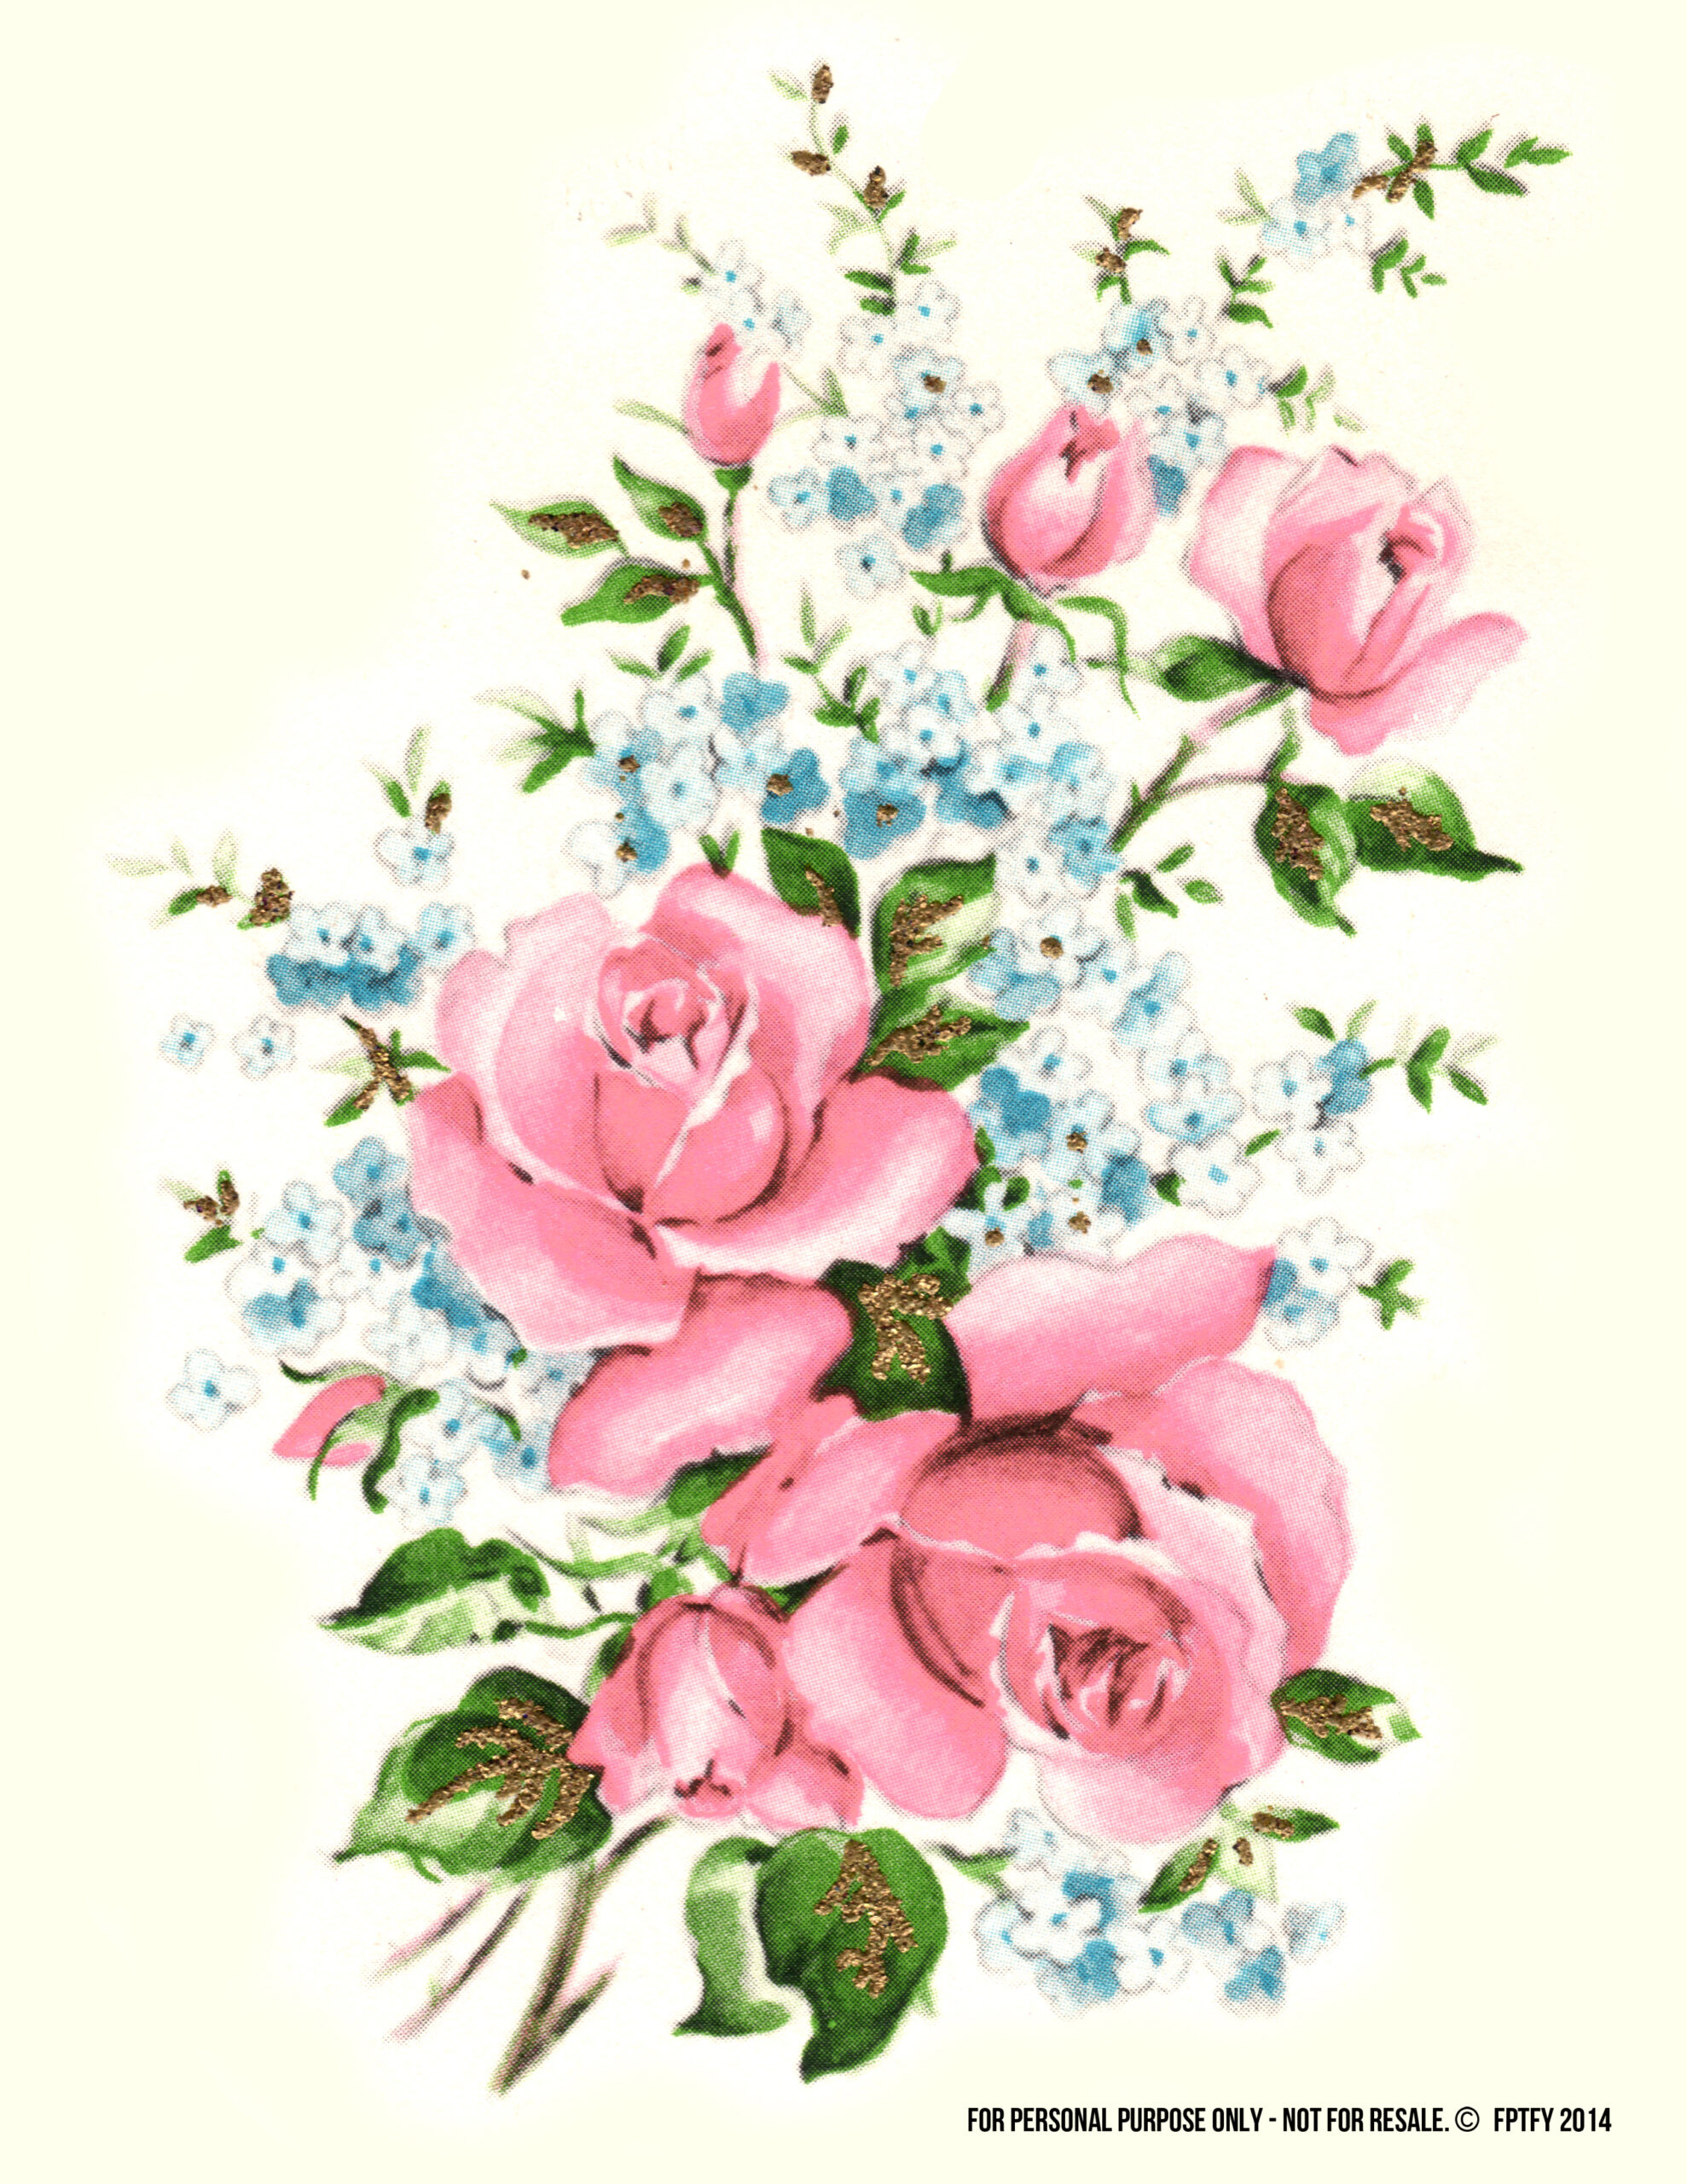 Pictures: Red and Pink Rose Bouquet Vintage Clip Art